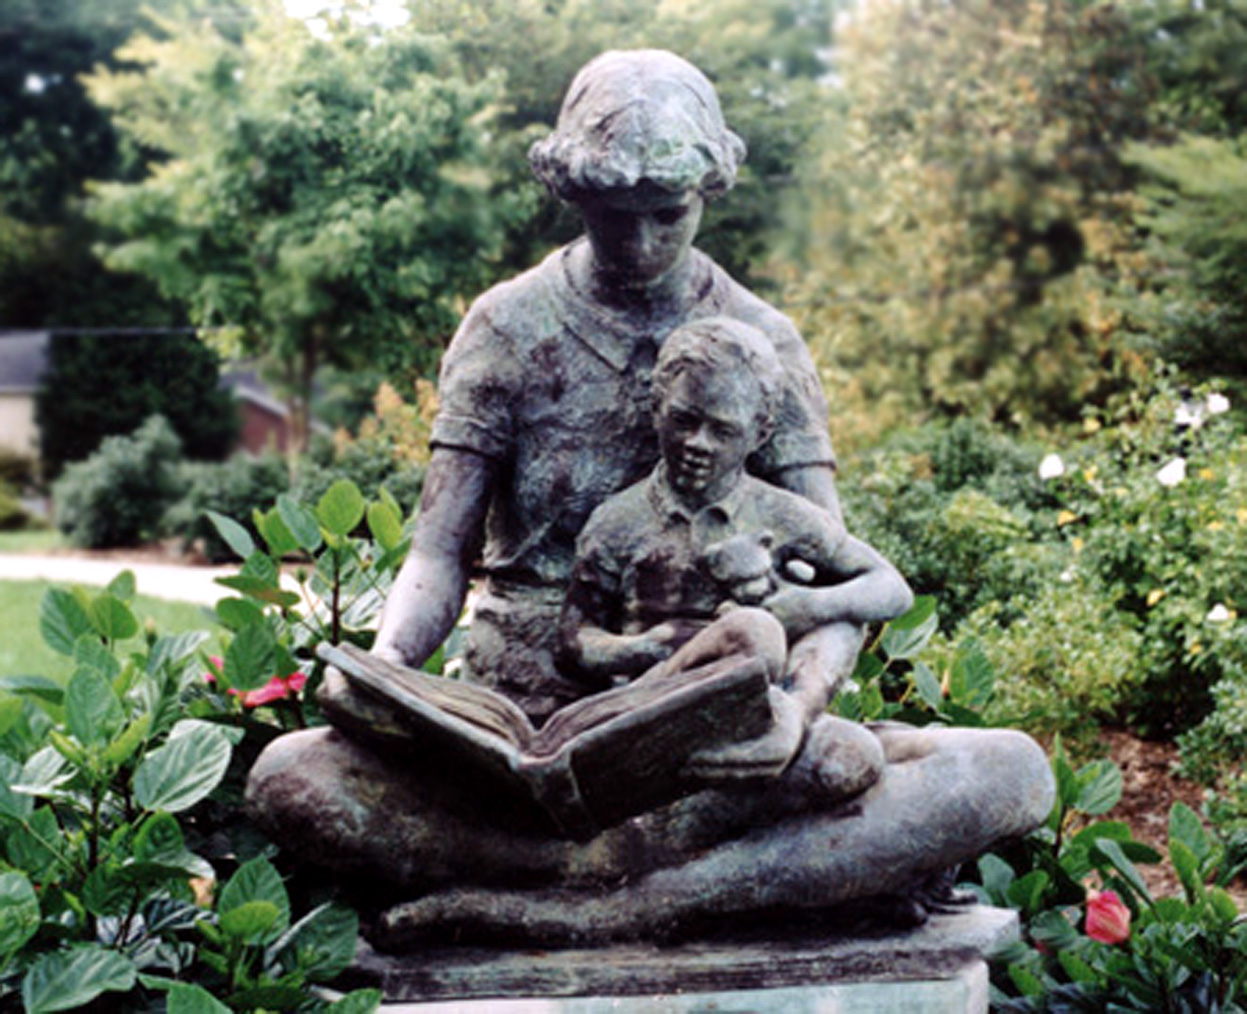 reading_with_child-statue_free-images-267030_9544.jpg